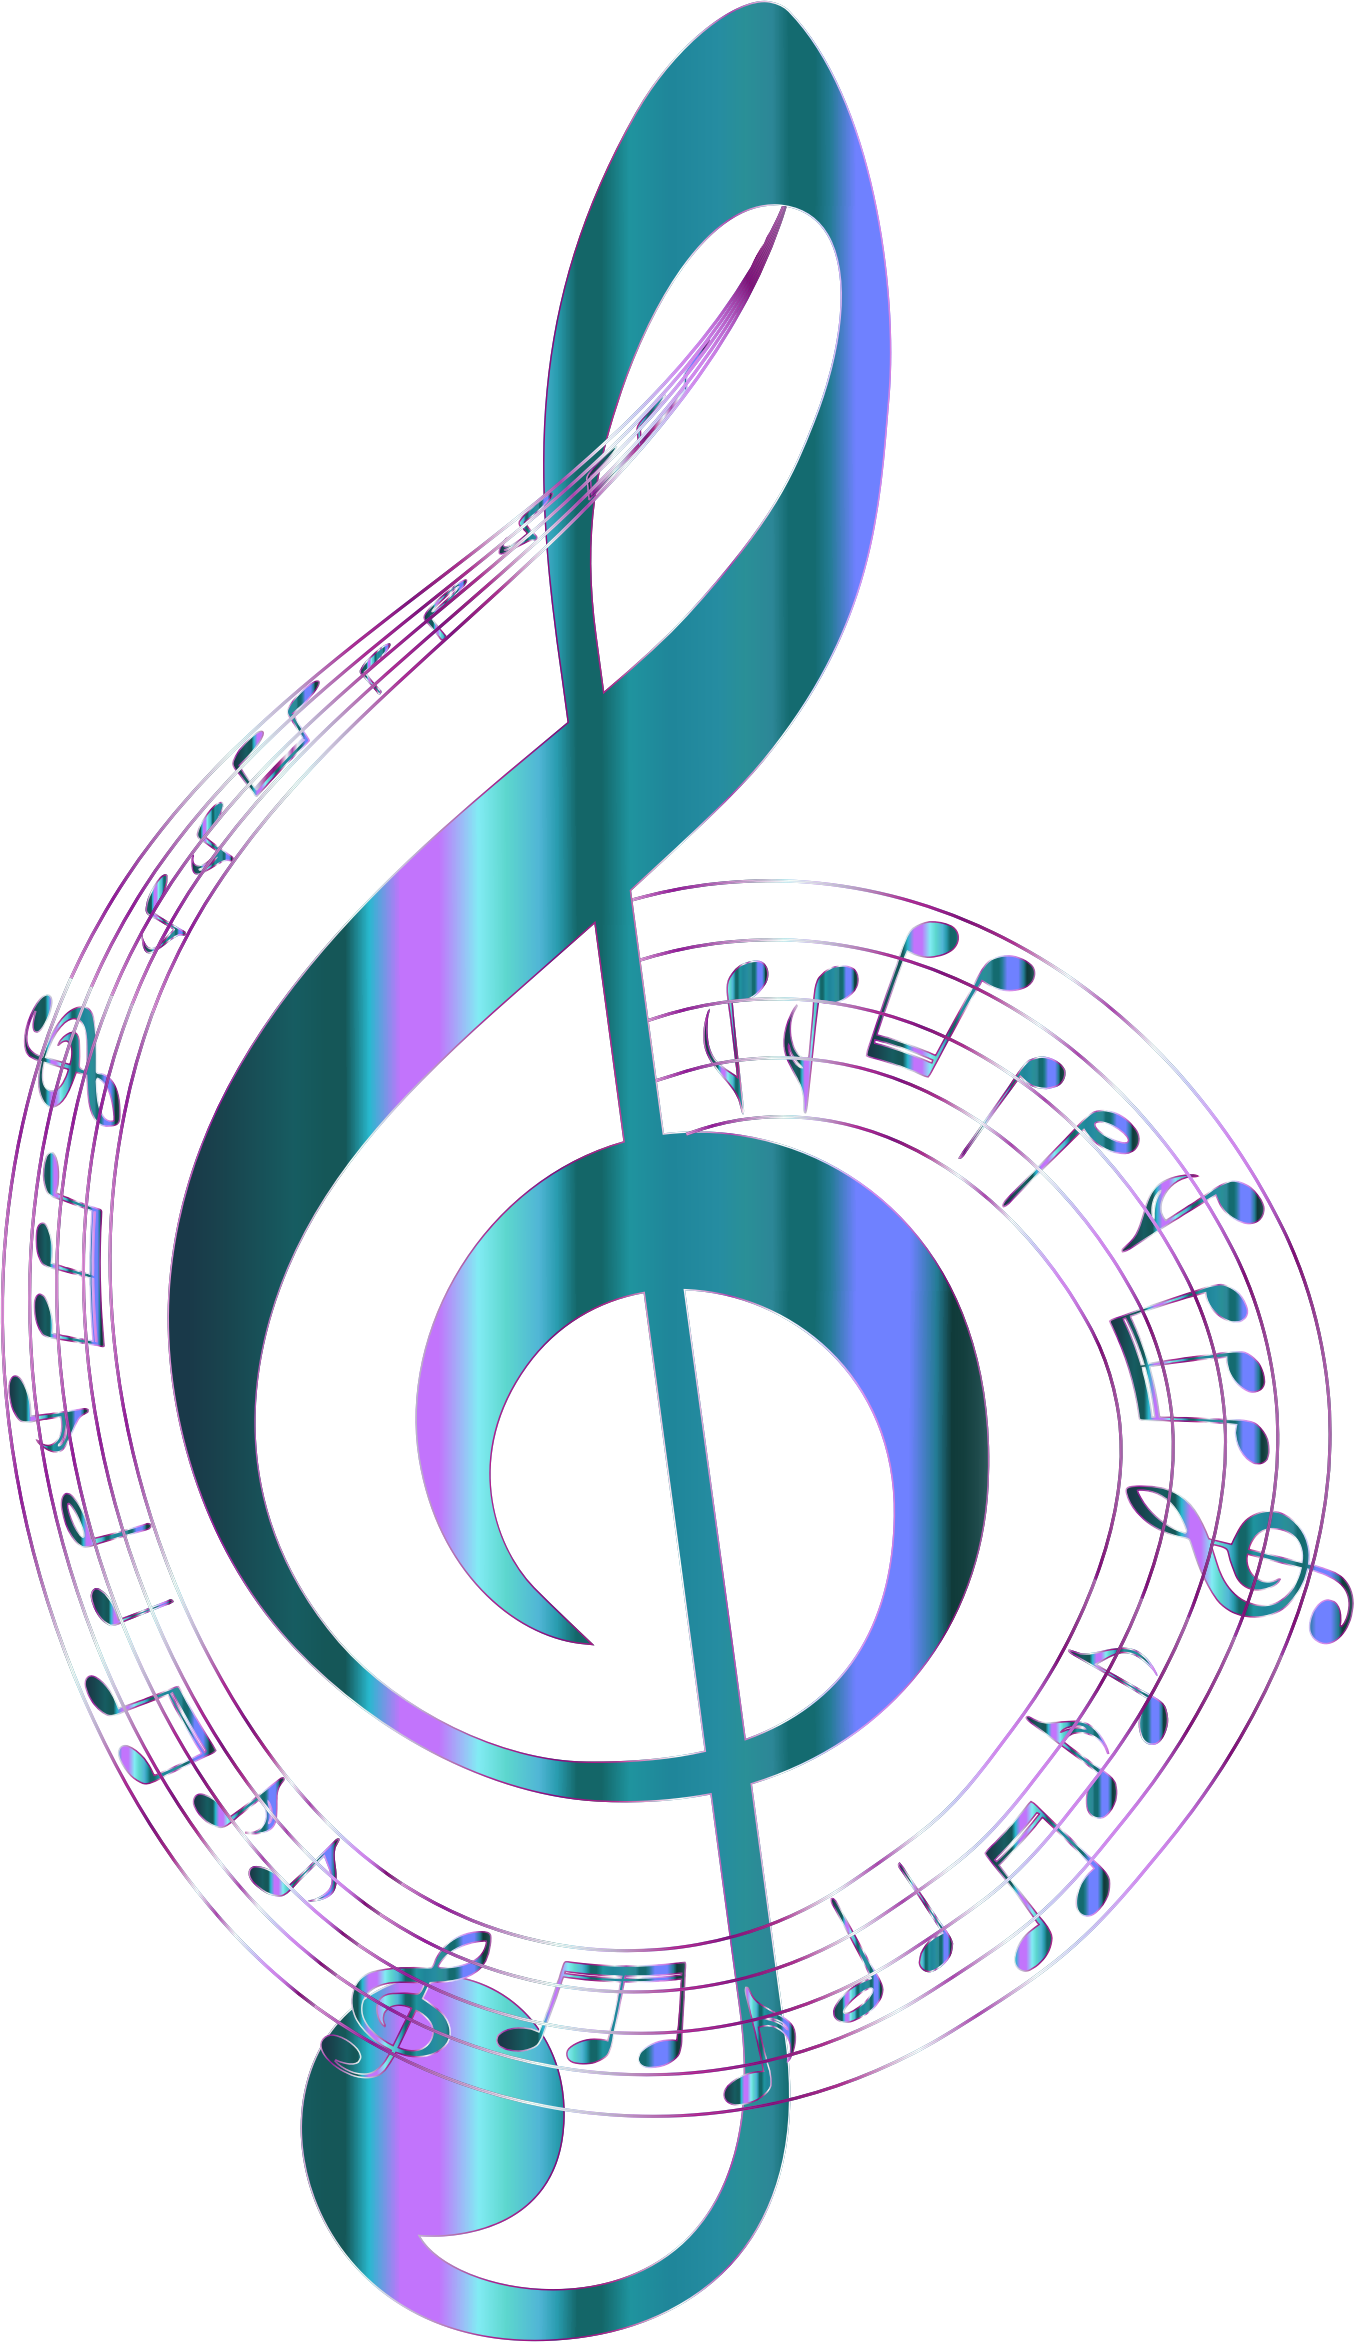 Music background png. Turquoise musical notes typography